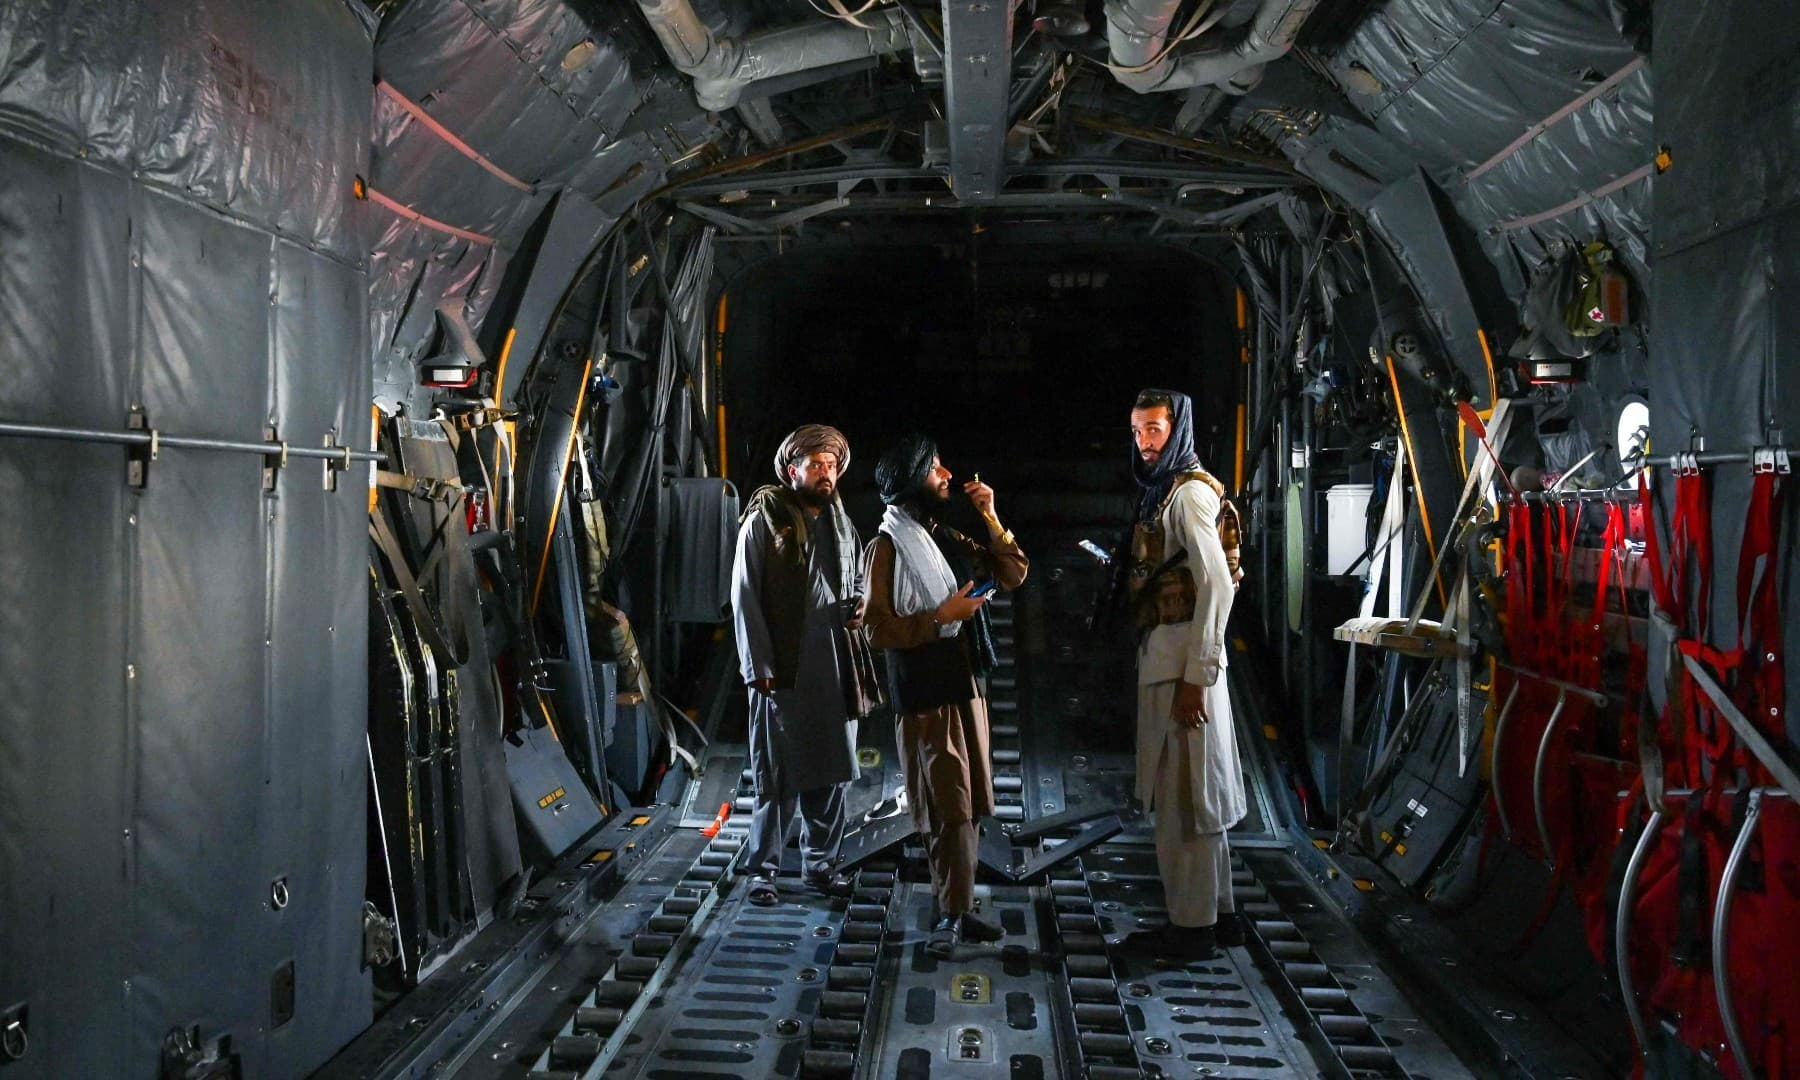 Taliban fighters stand inside an Afghan Air Force aircraft at the airport in Kabul on August 31. — AFP